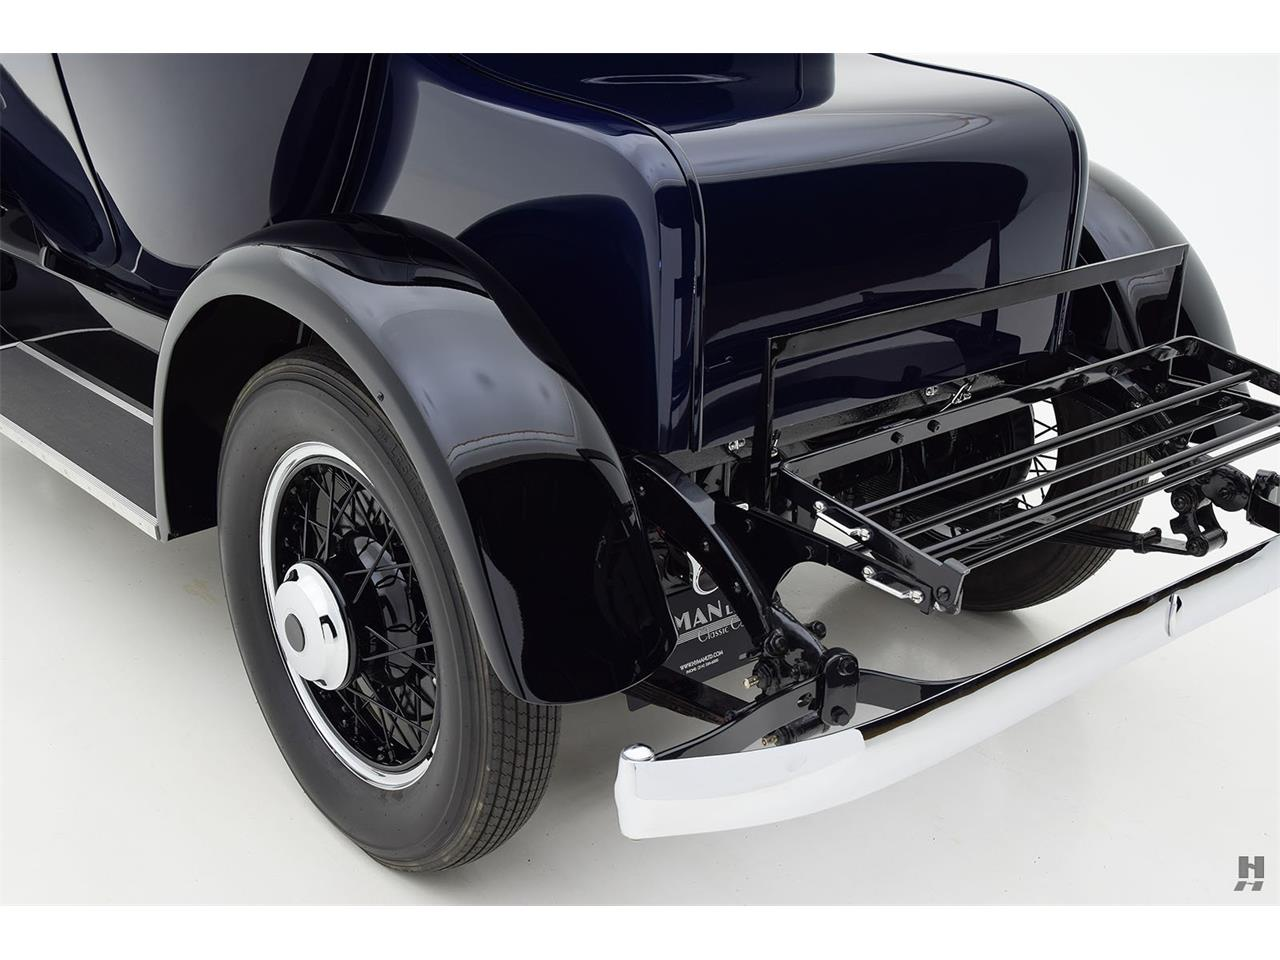 Large Picture of 1931 Detroit Electric Model 97 located in Saint Louis Missouri Offered by Hyman Ltd. Classic Cars - L0G2